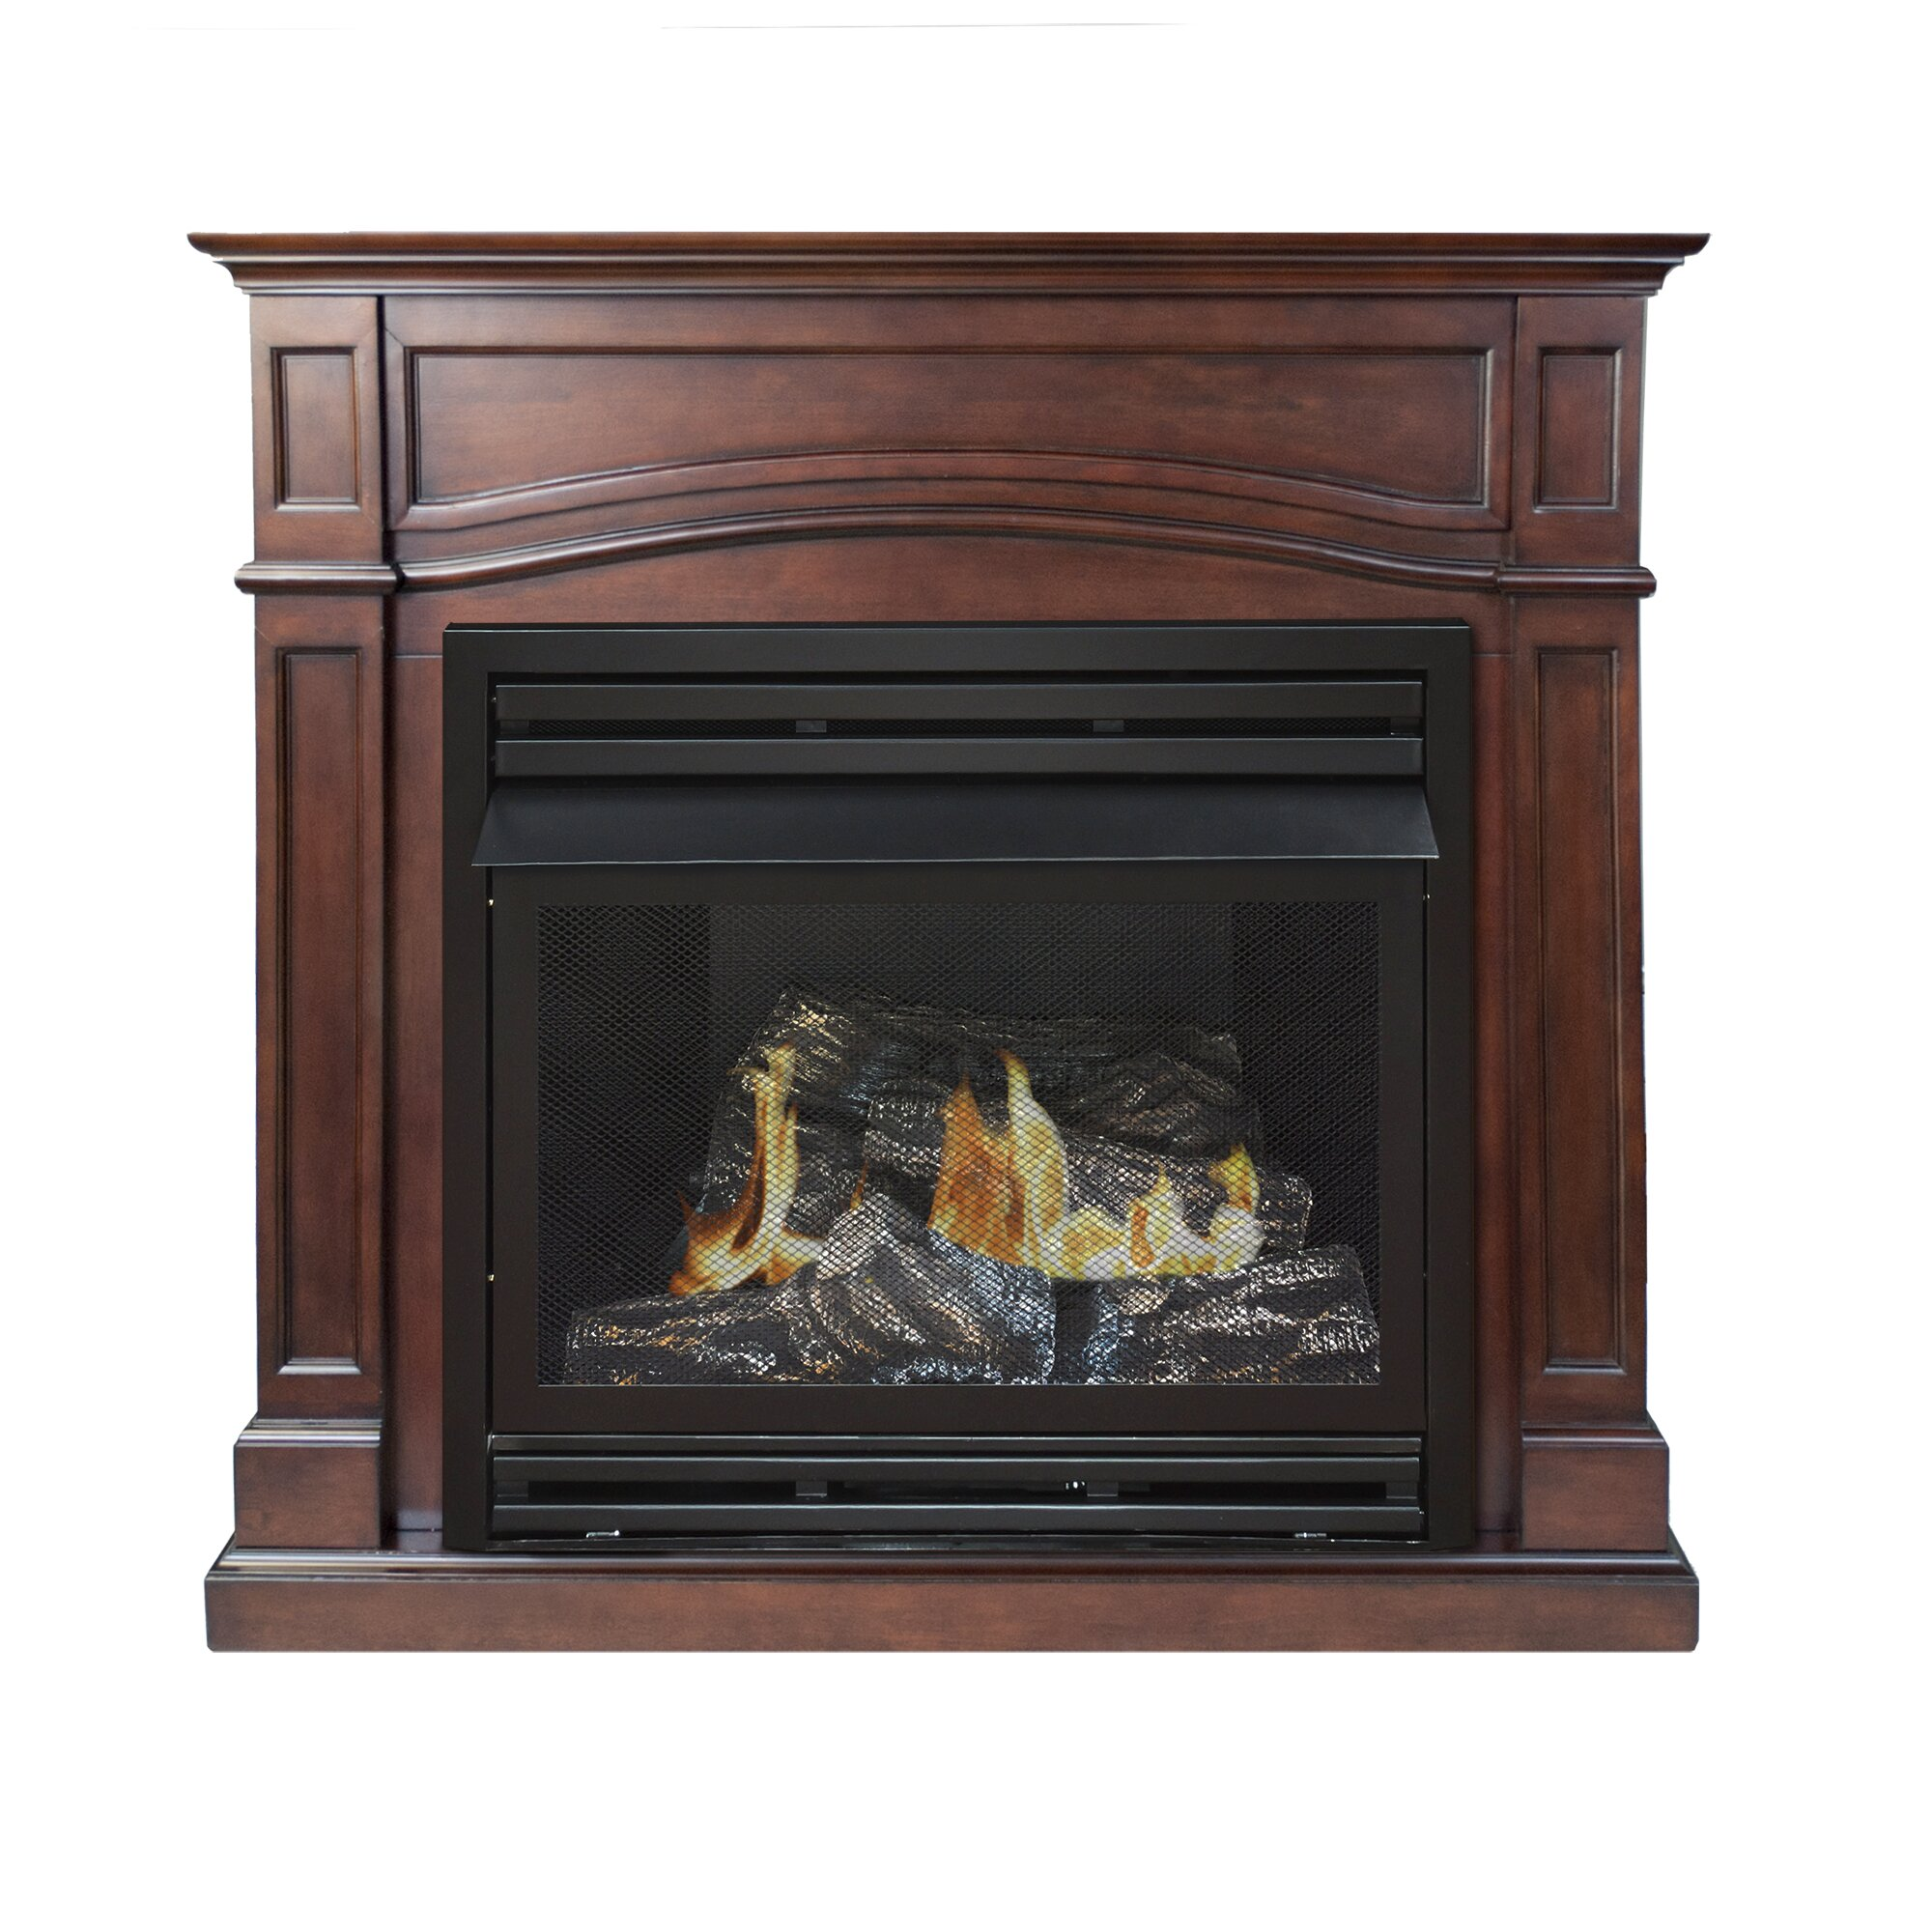 Pleasant Hearth Dual Fuel Vent Free Gas Fireplace Reviews Wayfair